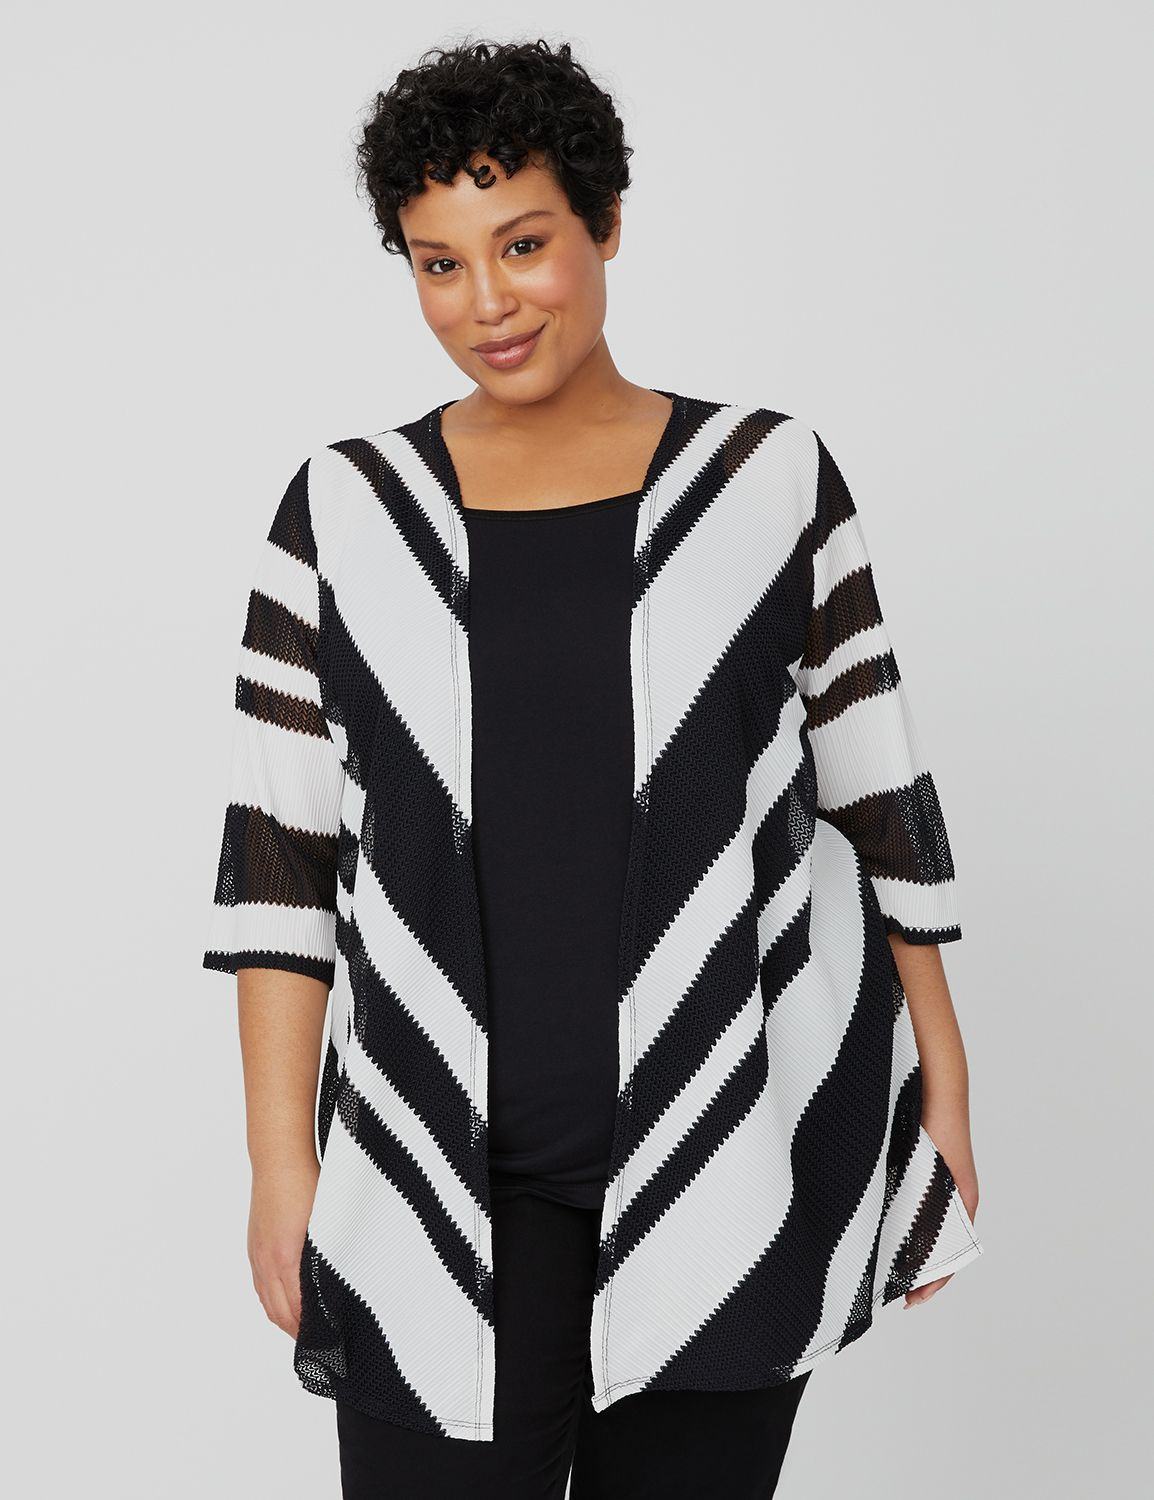 Cascading Herringbone Cardigan 1089908 BLK/WHT HERRINGBONE COLORBL MP-300099972